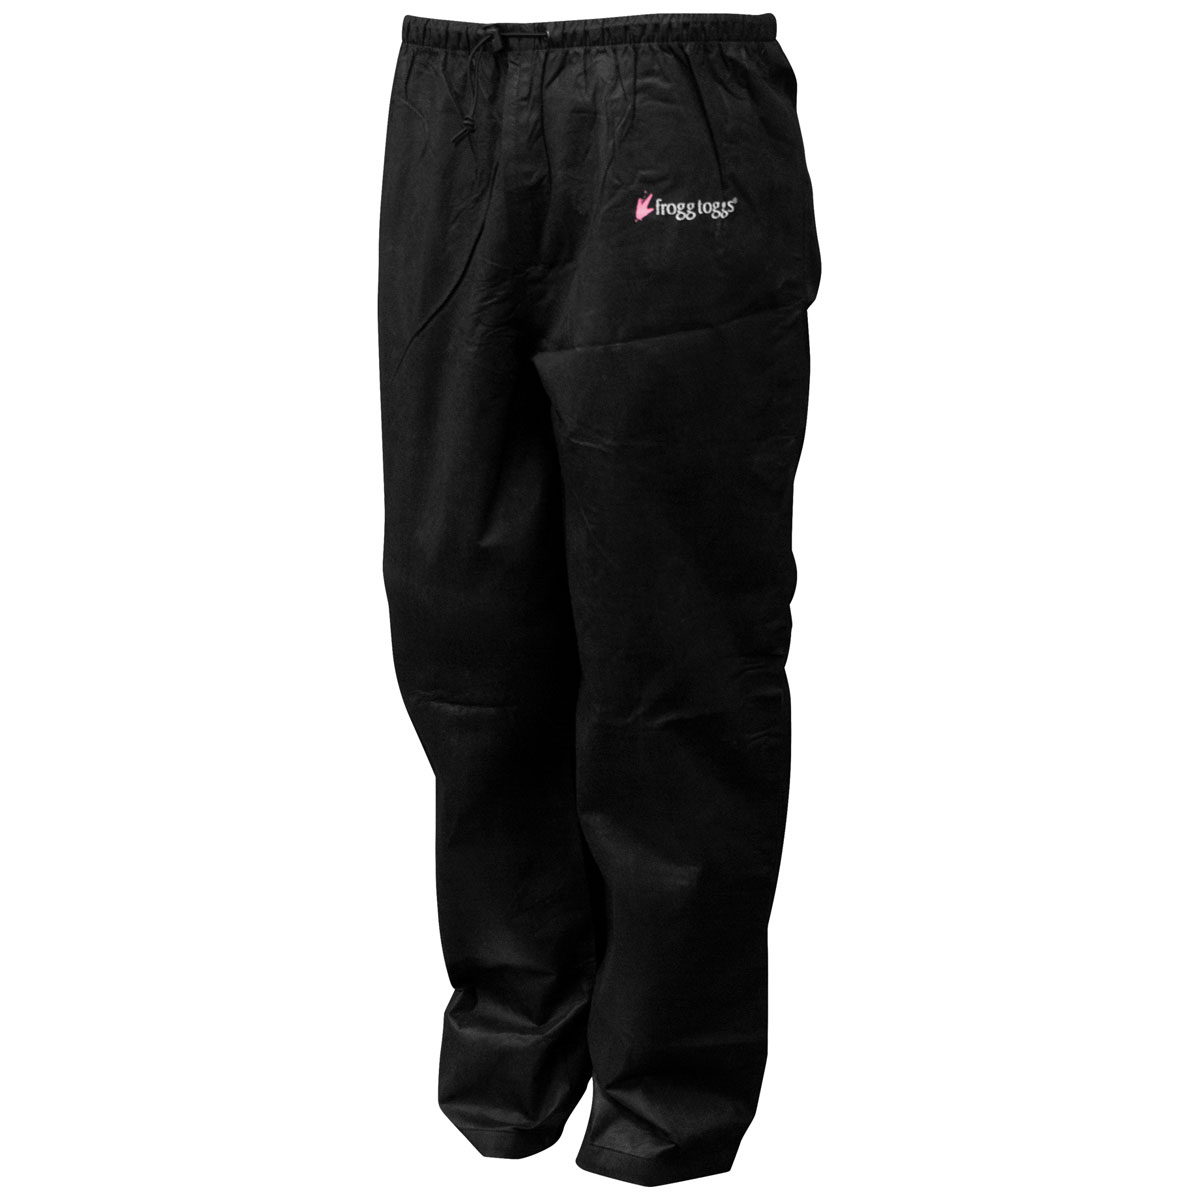 Frogg Toggs Women's Pro Action Black Pants